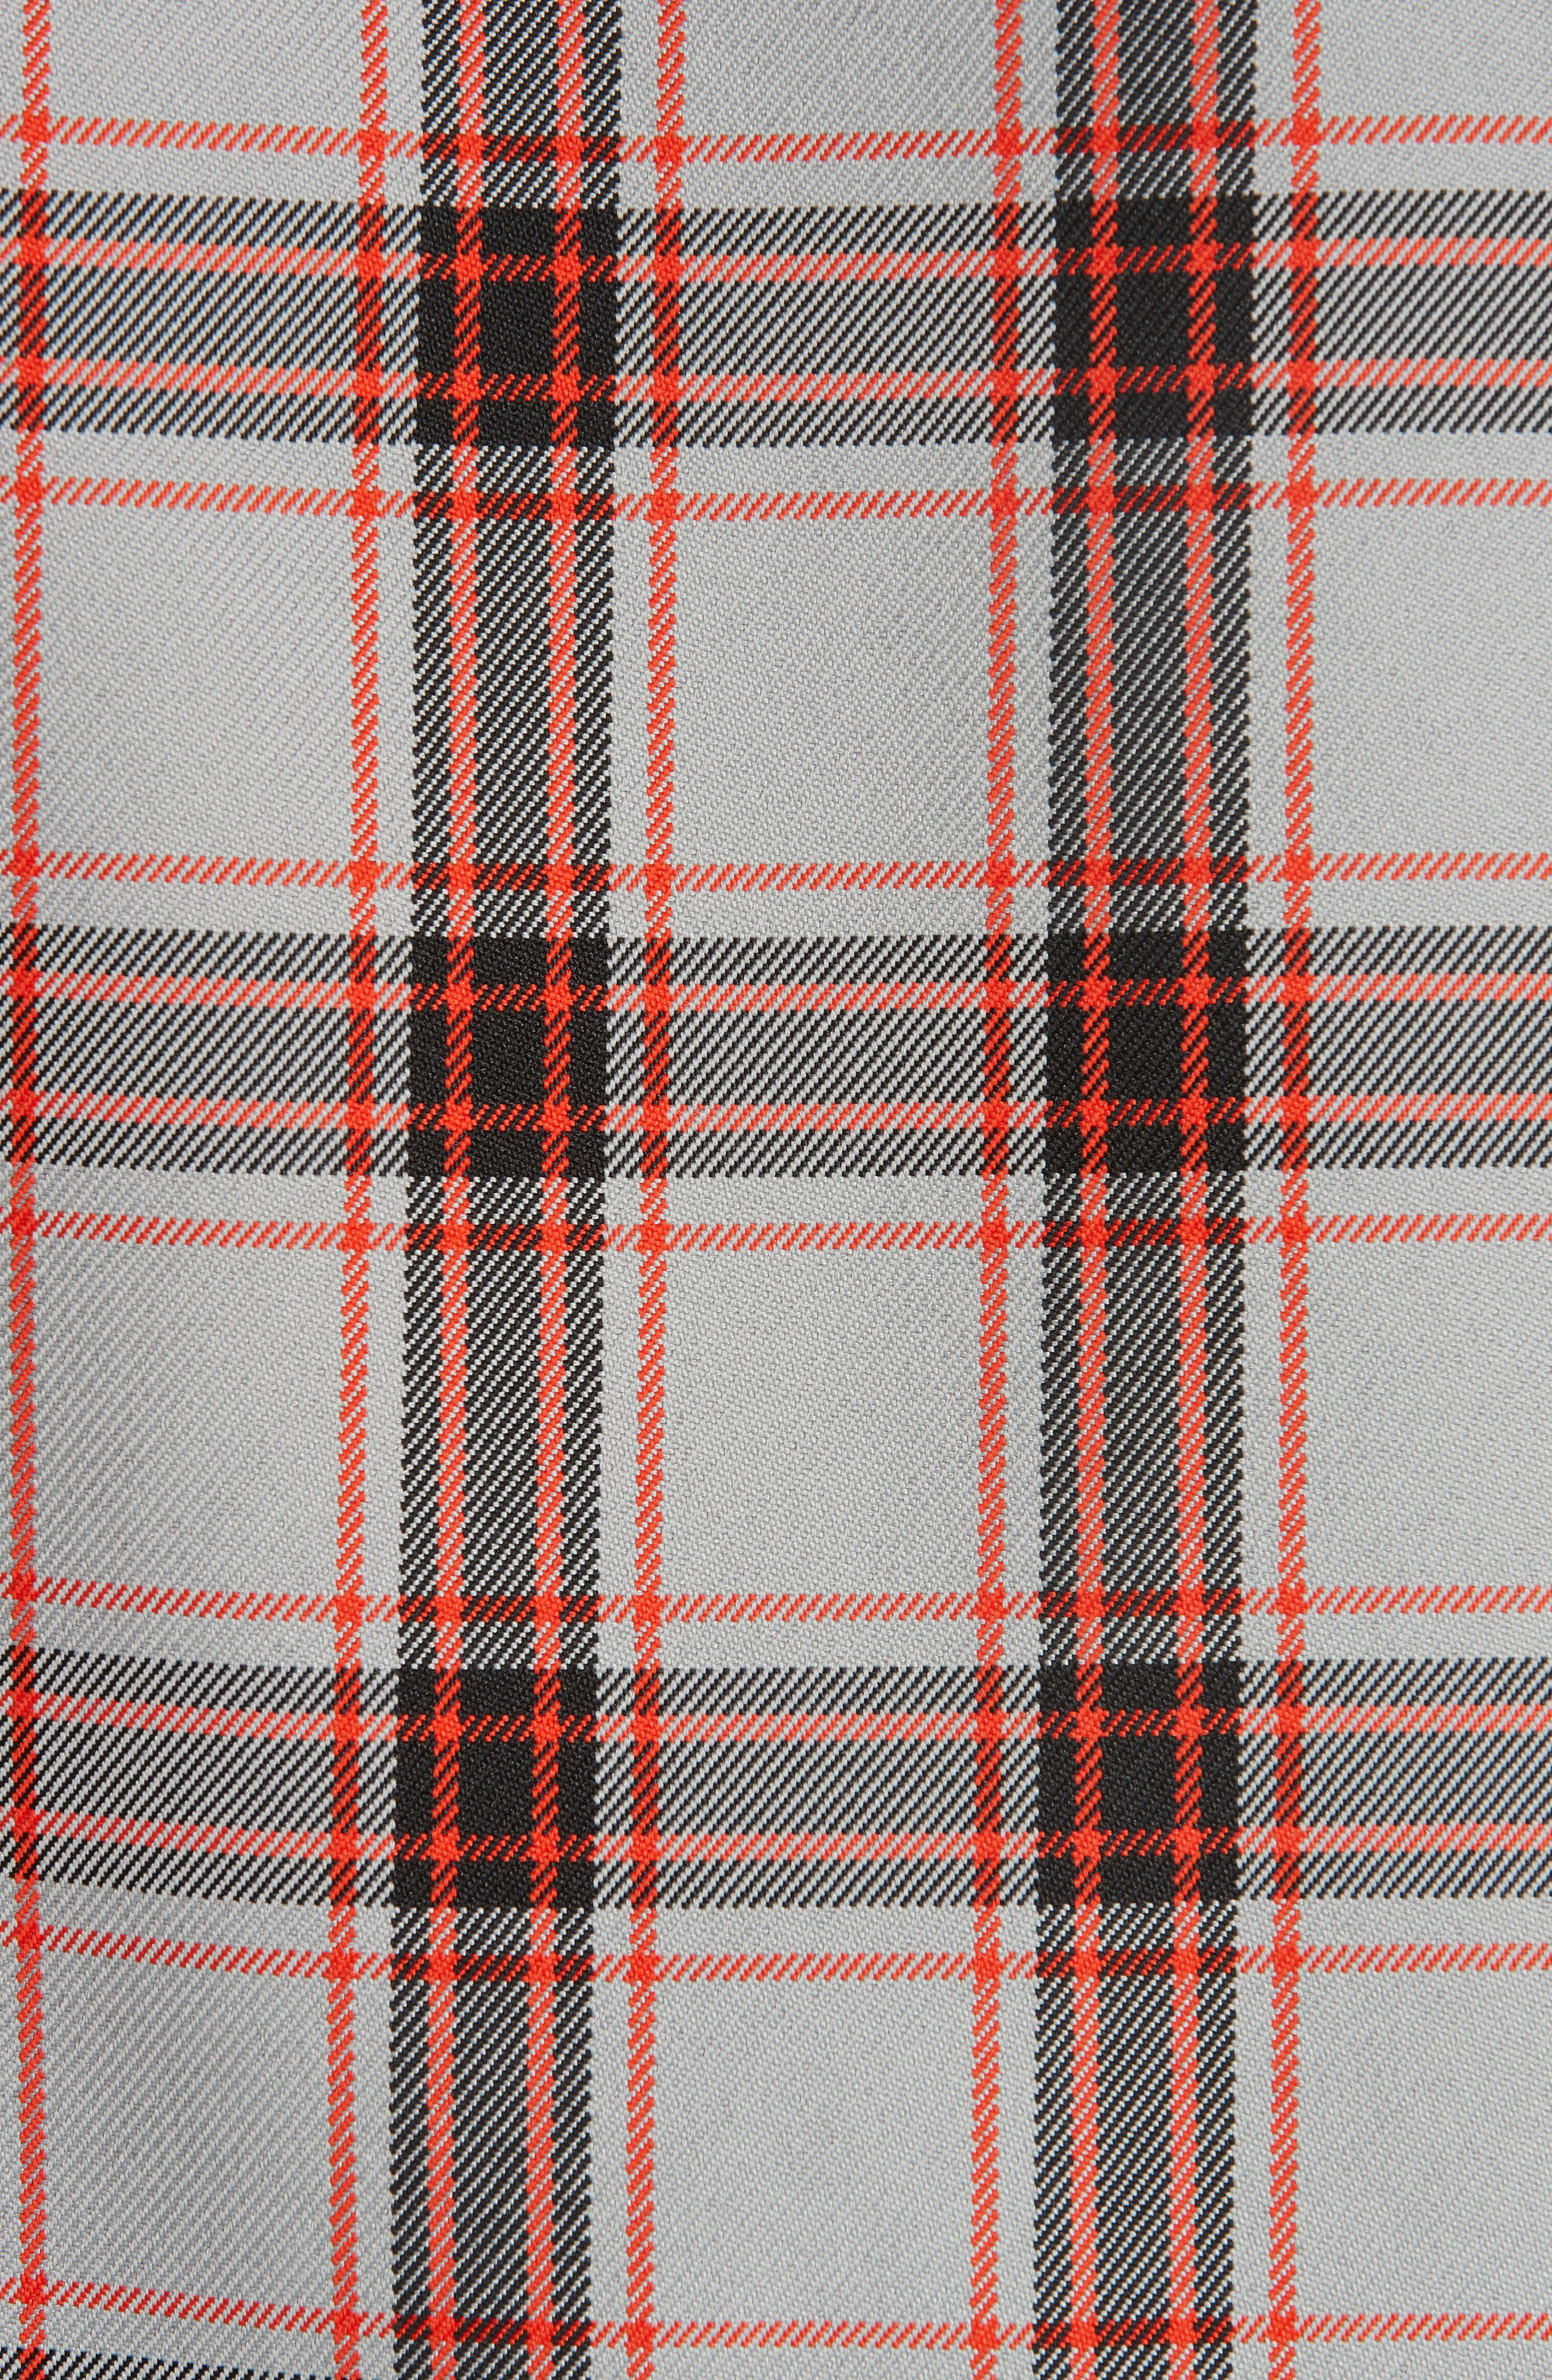 Oversize Plaid Twill Shirt,                             Alternate thumbnail 5, color,                             GREY/ RED